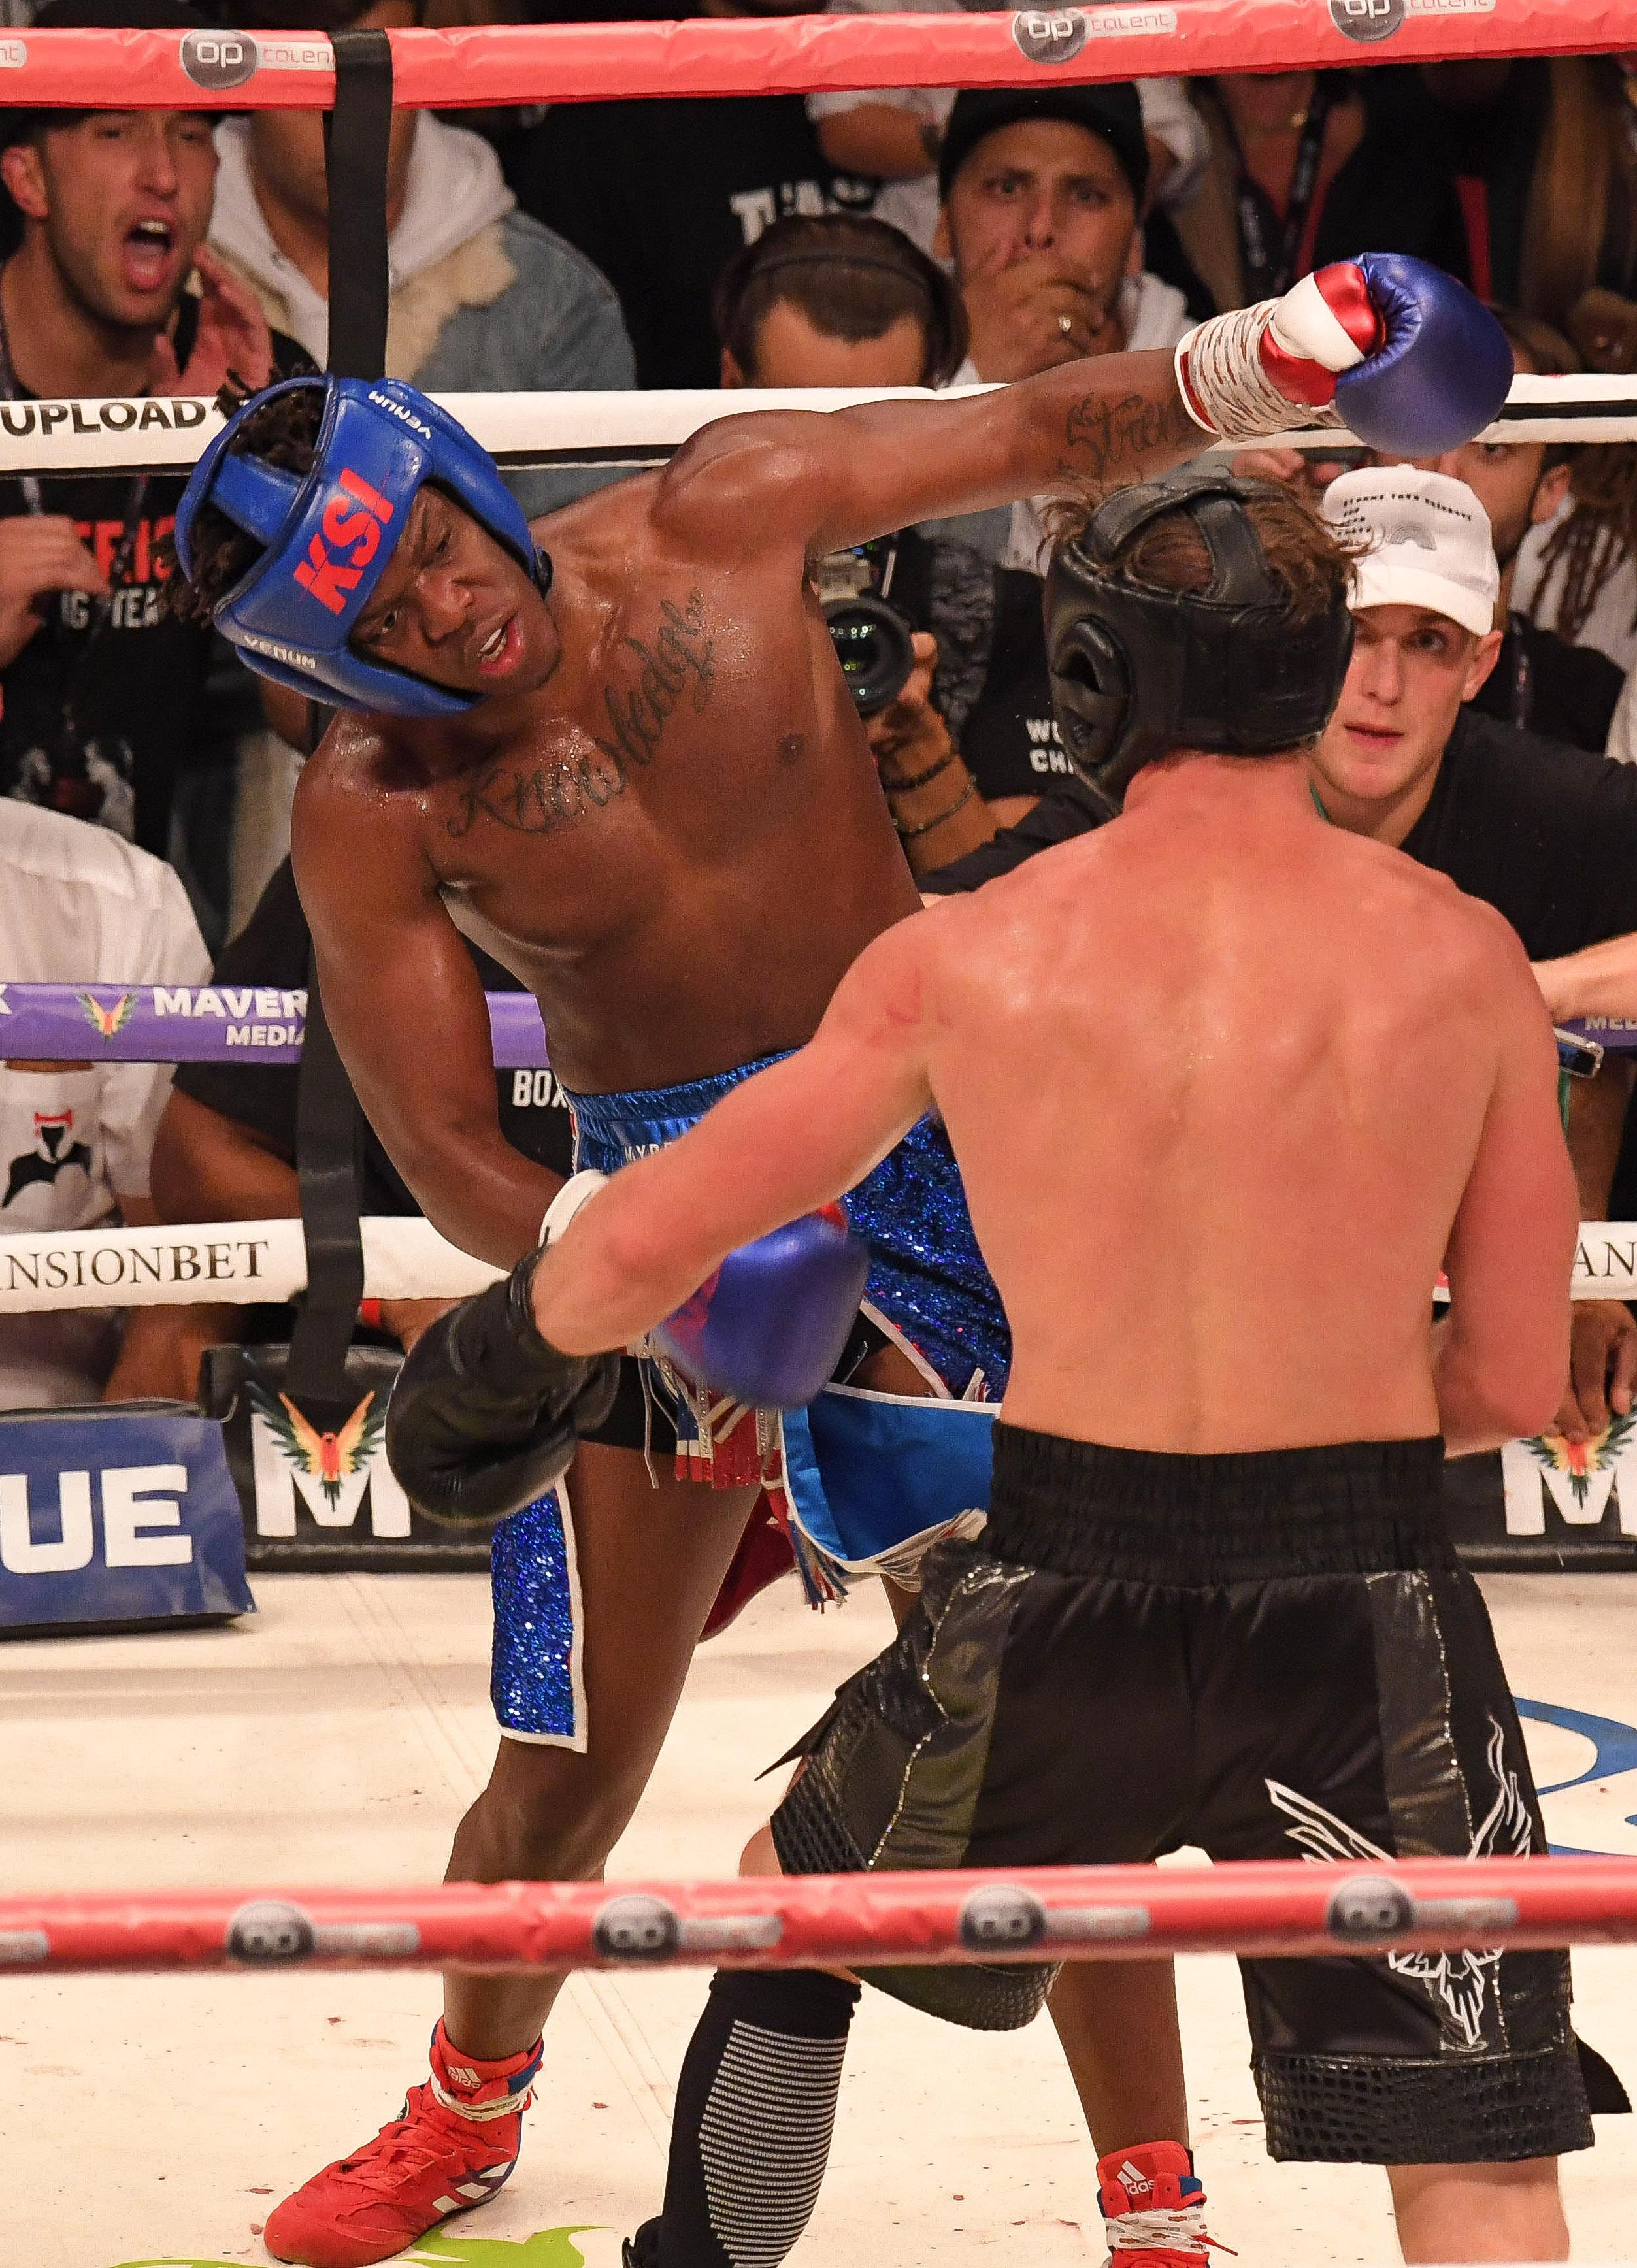 KSI is hoping to postpone his rematch with Logan Paul until May 2019